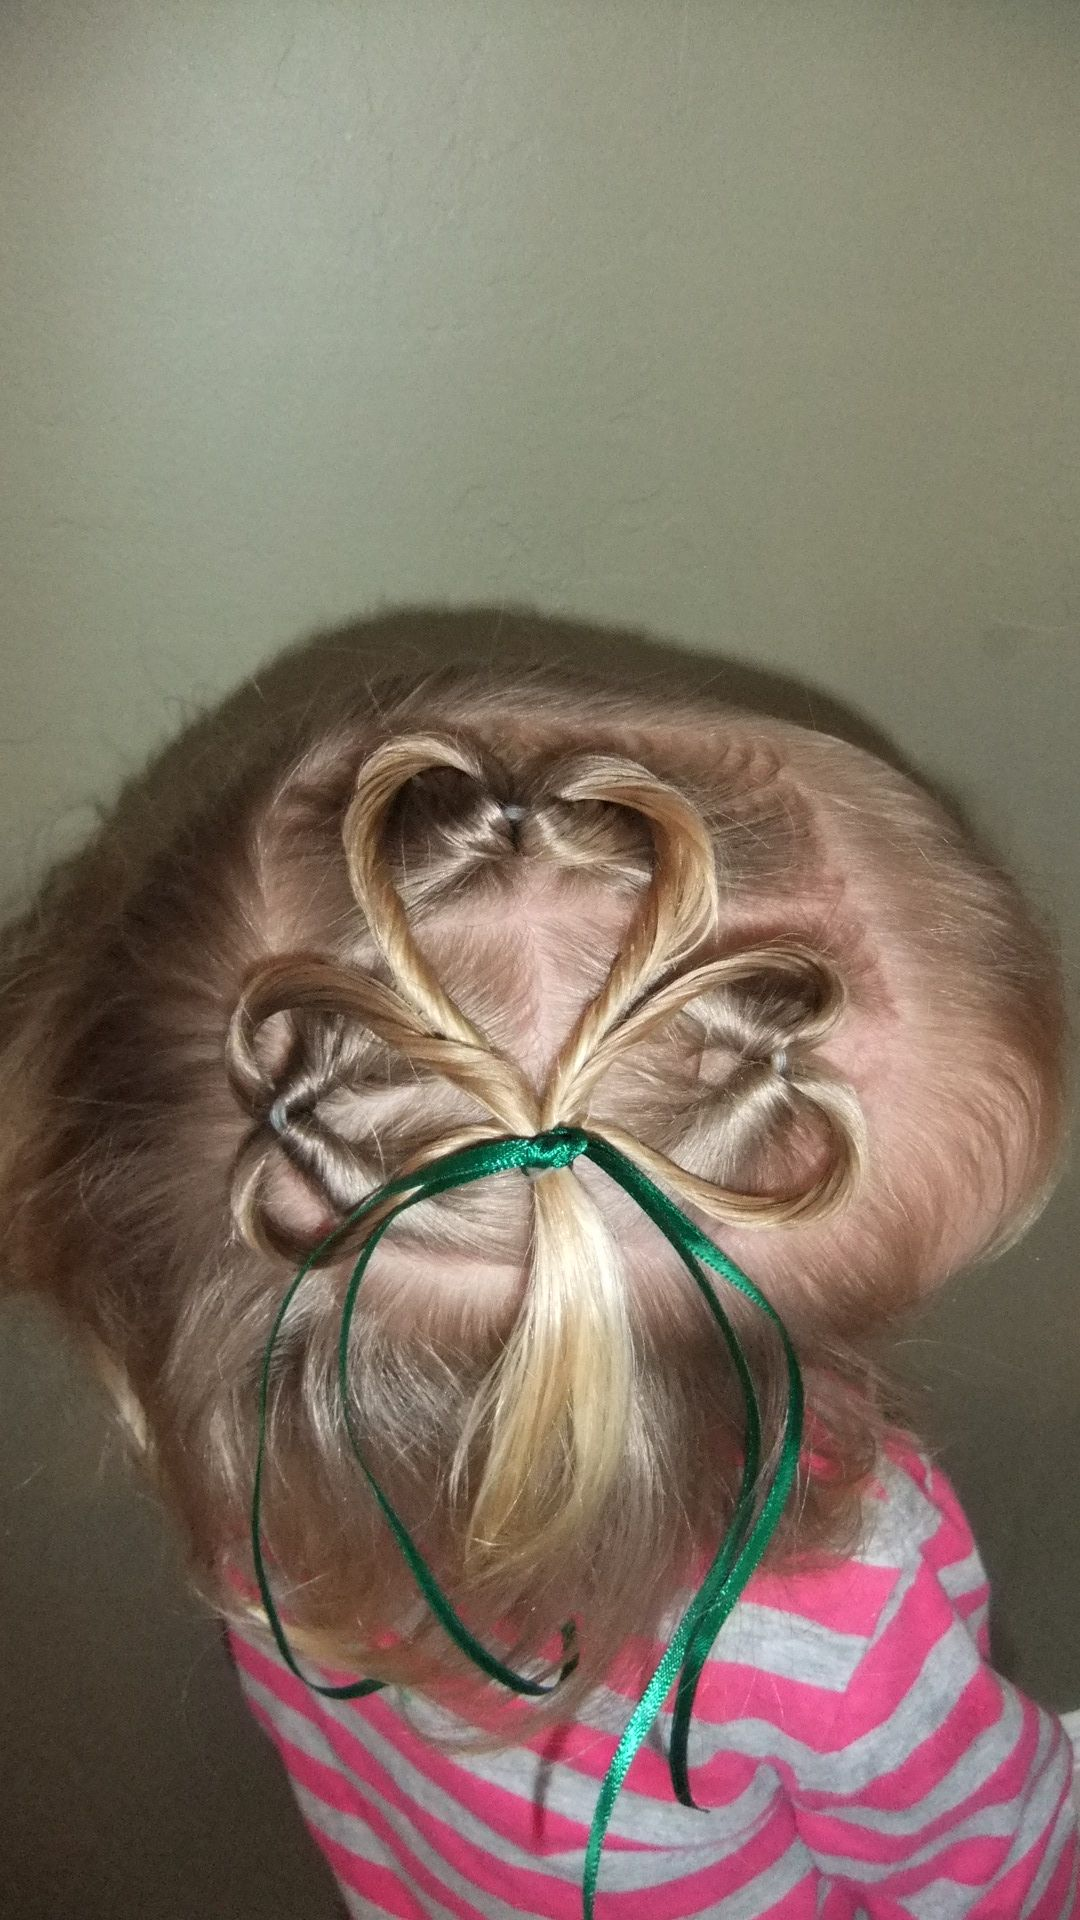 St patricks day aw kids pinterest saints hair style and